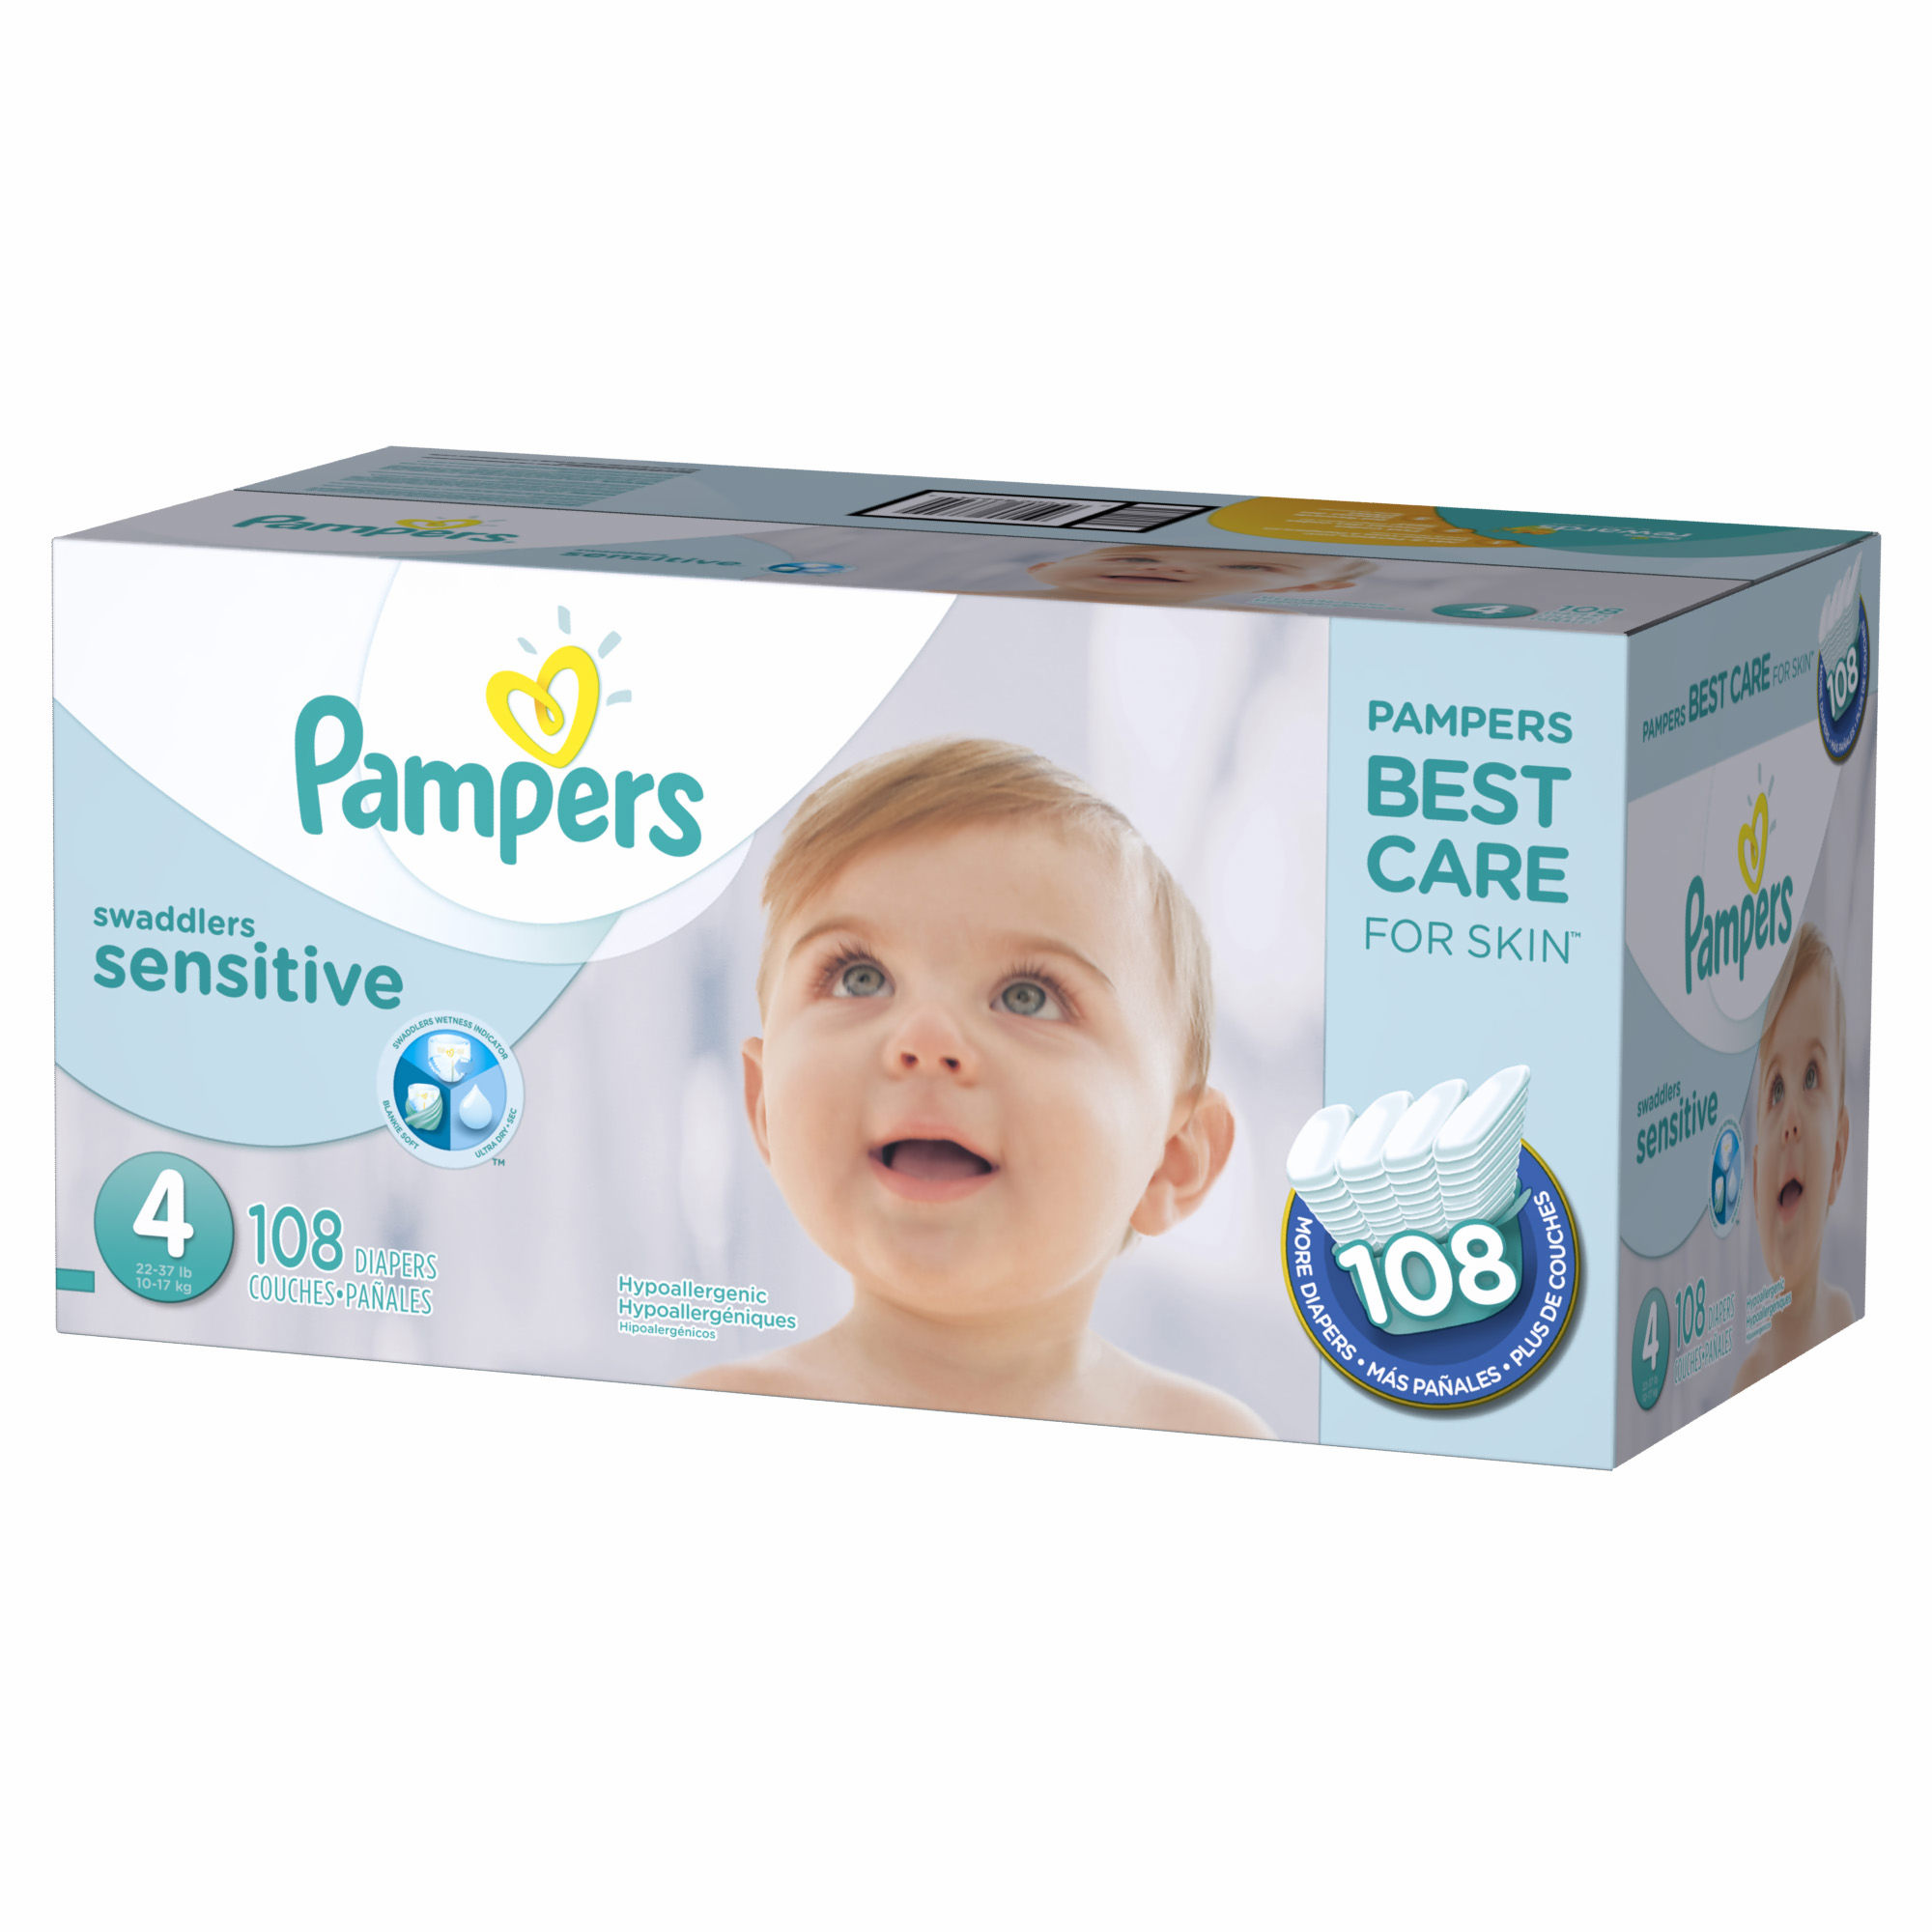 Pampers Swaddlers Sensitive Size 4 Diapers, 108 ct. (diapers - Wholesale Price